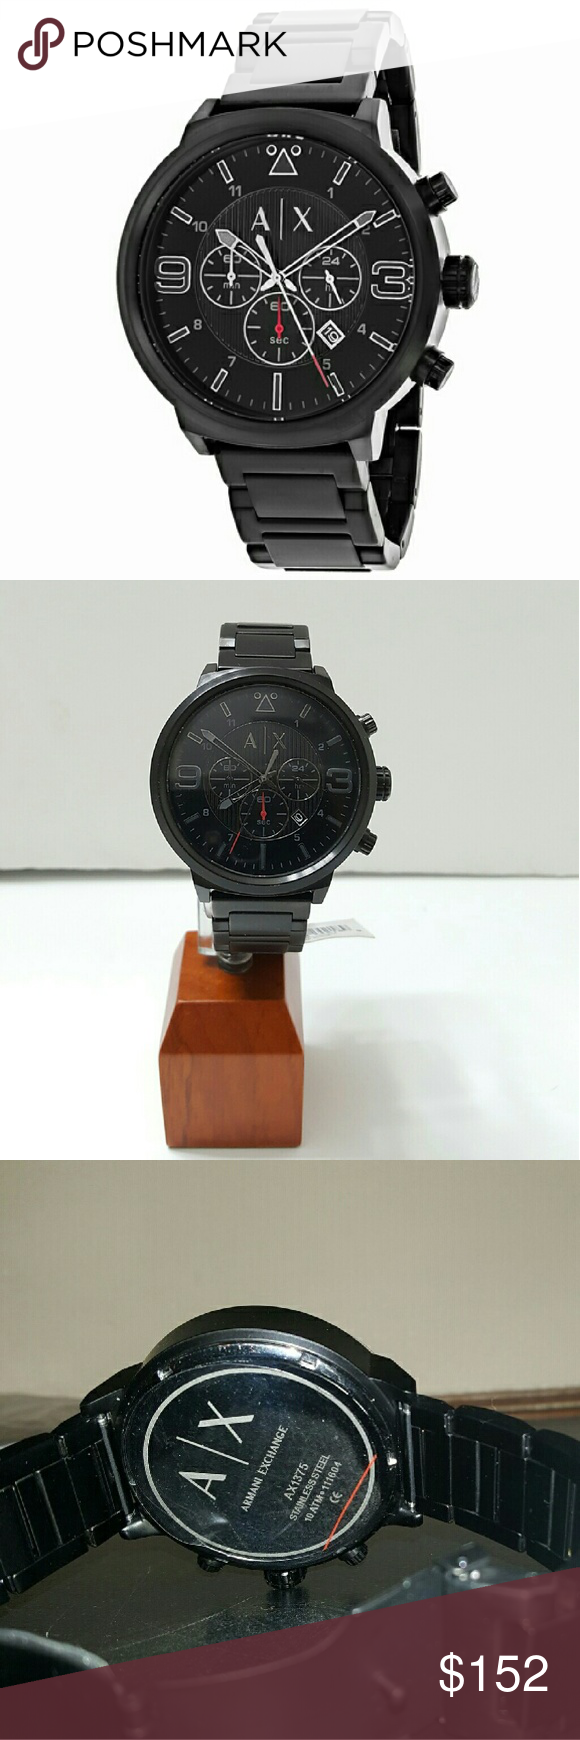 NWT Armani AX1375 Men's Watch Firm PRICE  $152.00  100% Authentic as you can see.   The watch only.    Retail price  $240.00   BRAND:Armani Exchange MODEL:AX1375 GENDER:Men's MOVEMENT:Quartz CASE SIZE:49 mm CASE THICKNESS:14 mm CASE MATERIAL:Black Stainless Steel CASE SHAPE:Round CASE BACK:Solid BEZEL:Fixed DIAL TYPE:Analog DIAL COLOR:Black CRYSTAL:Scratch Resistant Mineral HANDS:Black DIAL MARKERS:Index- Arabic Numerals SUB DIALS:Three - 60 Armani Exchange Accessories Watches